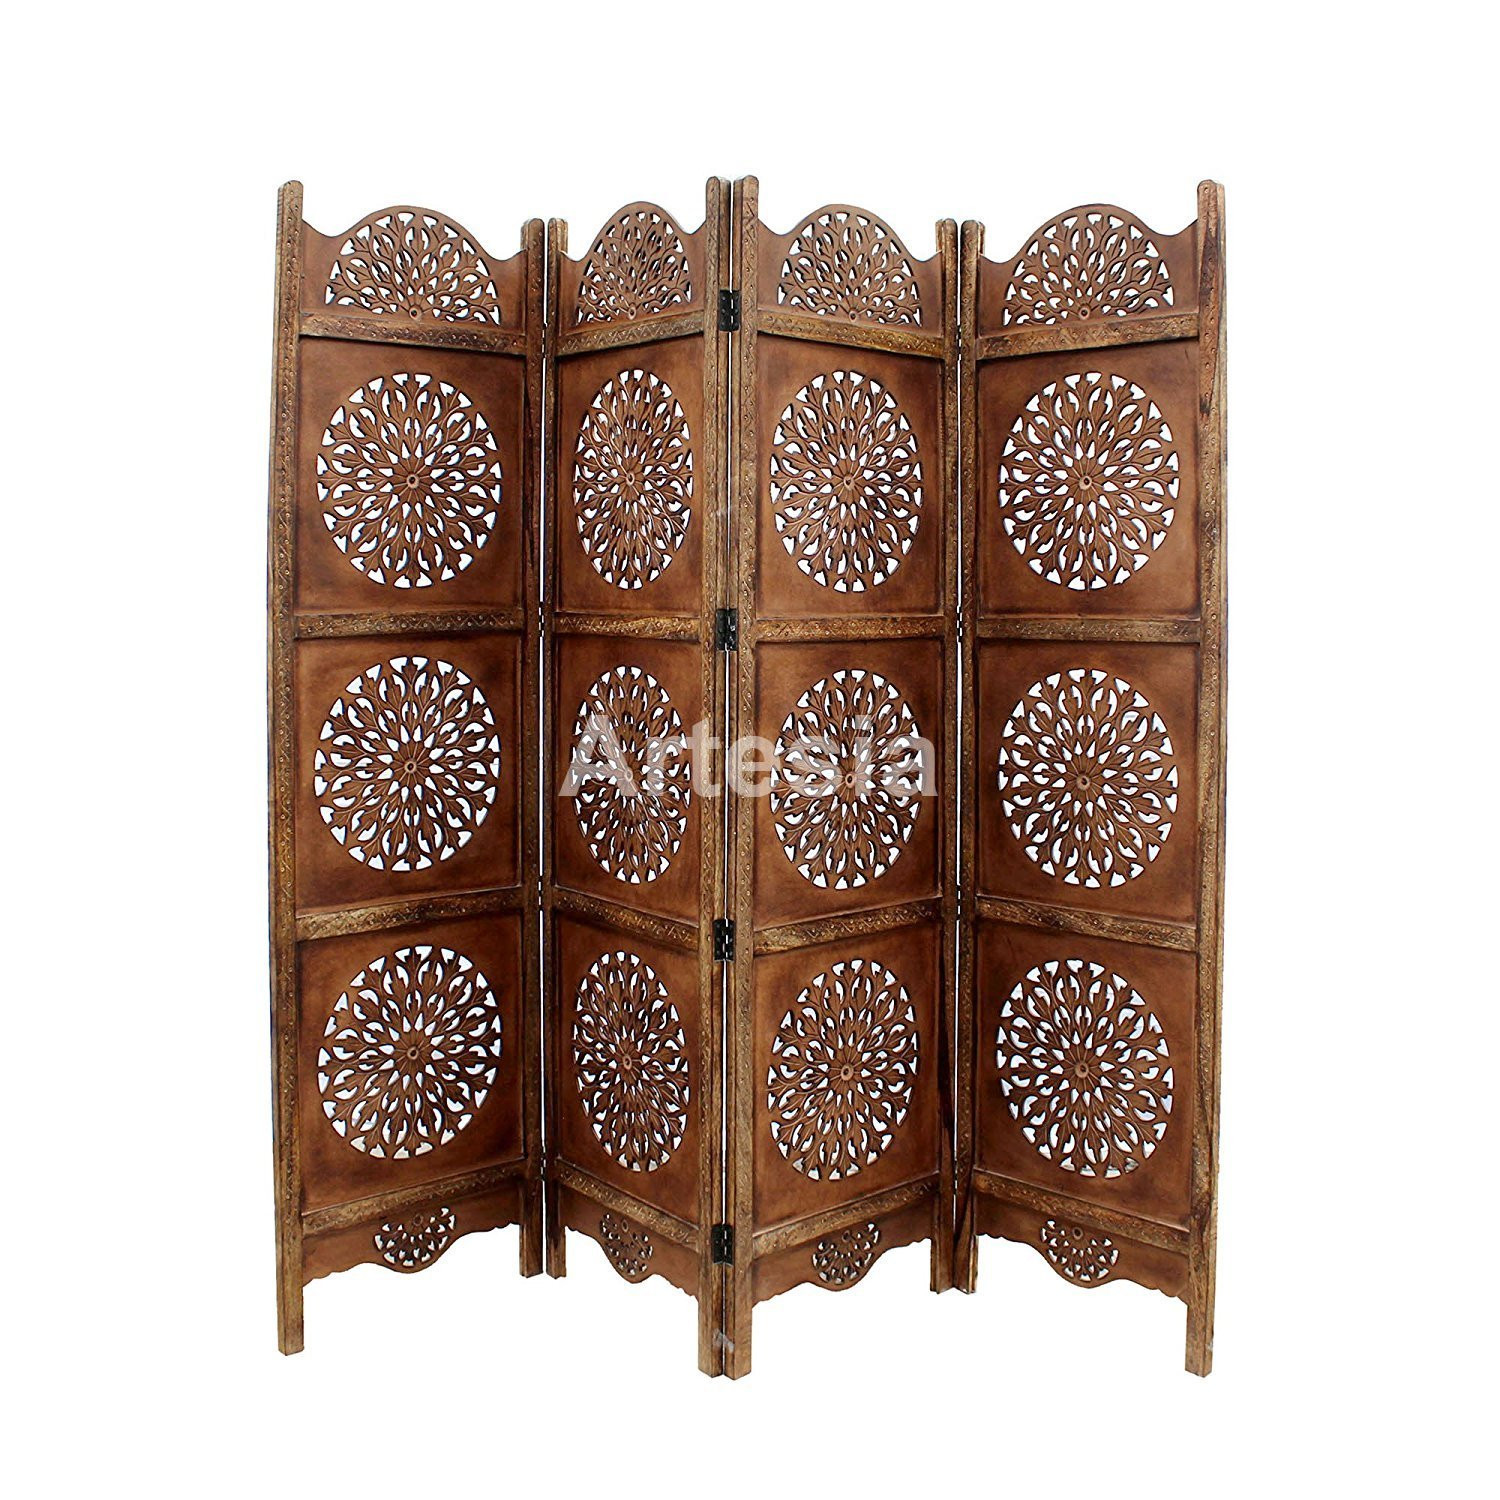 Artesia Handcrafted 4 Panel Wooden Room Partition, Wooden Screen